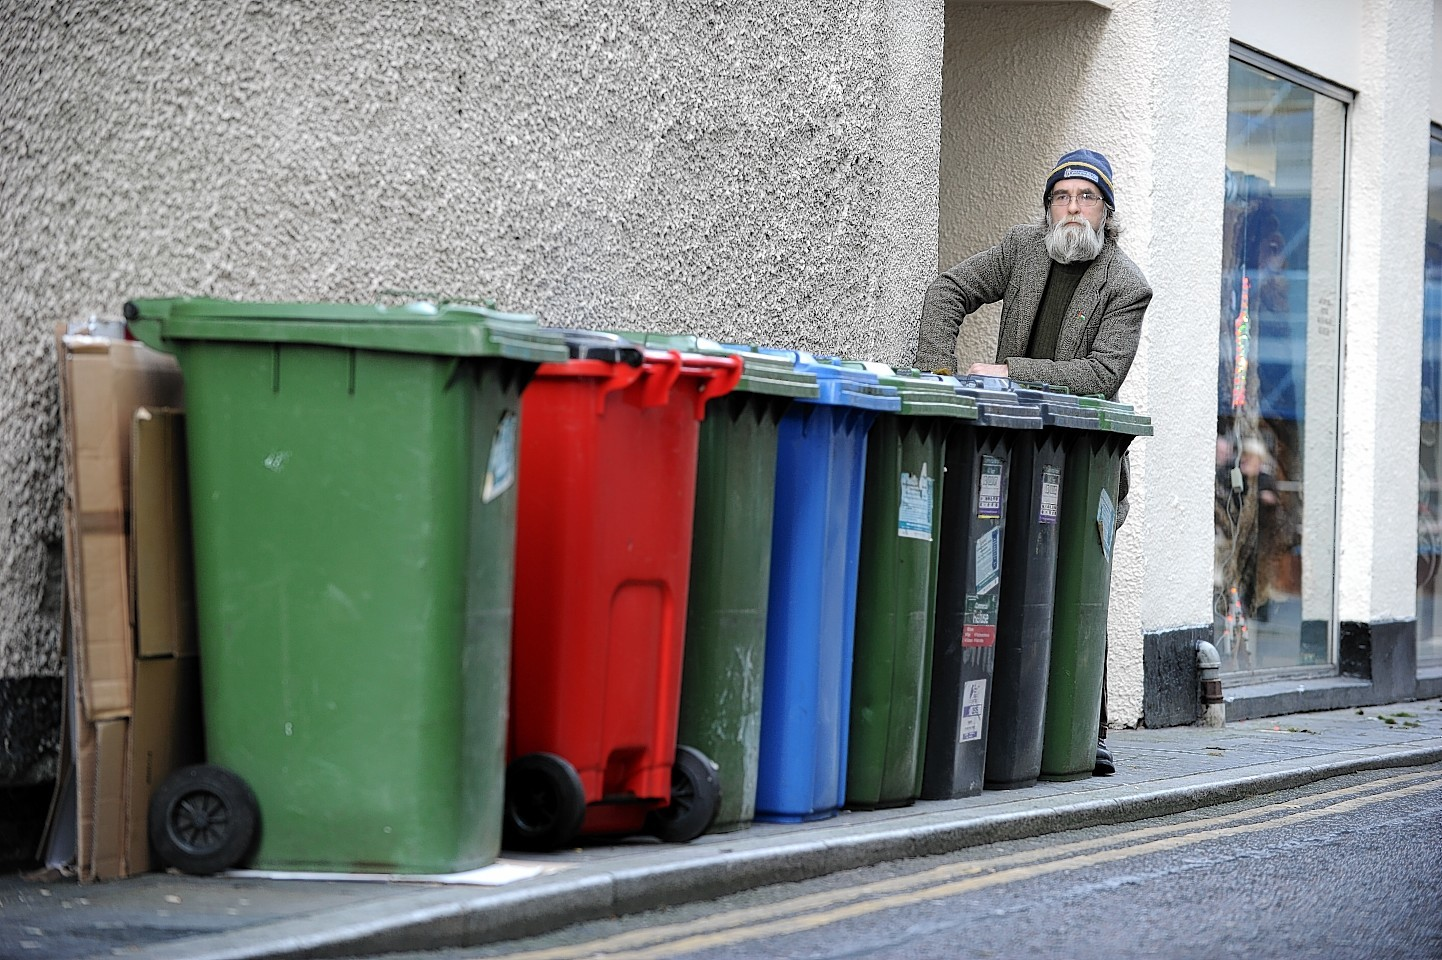 Donnie Kerr with some of the offending bins